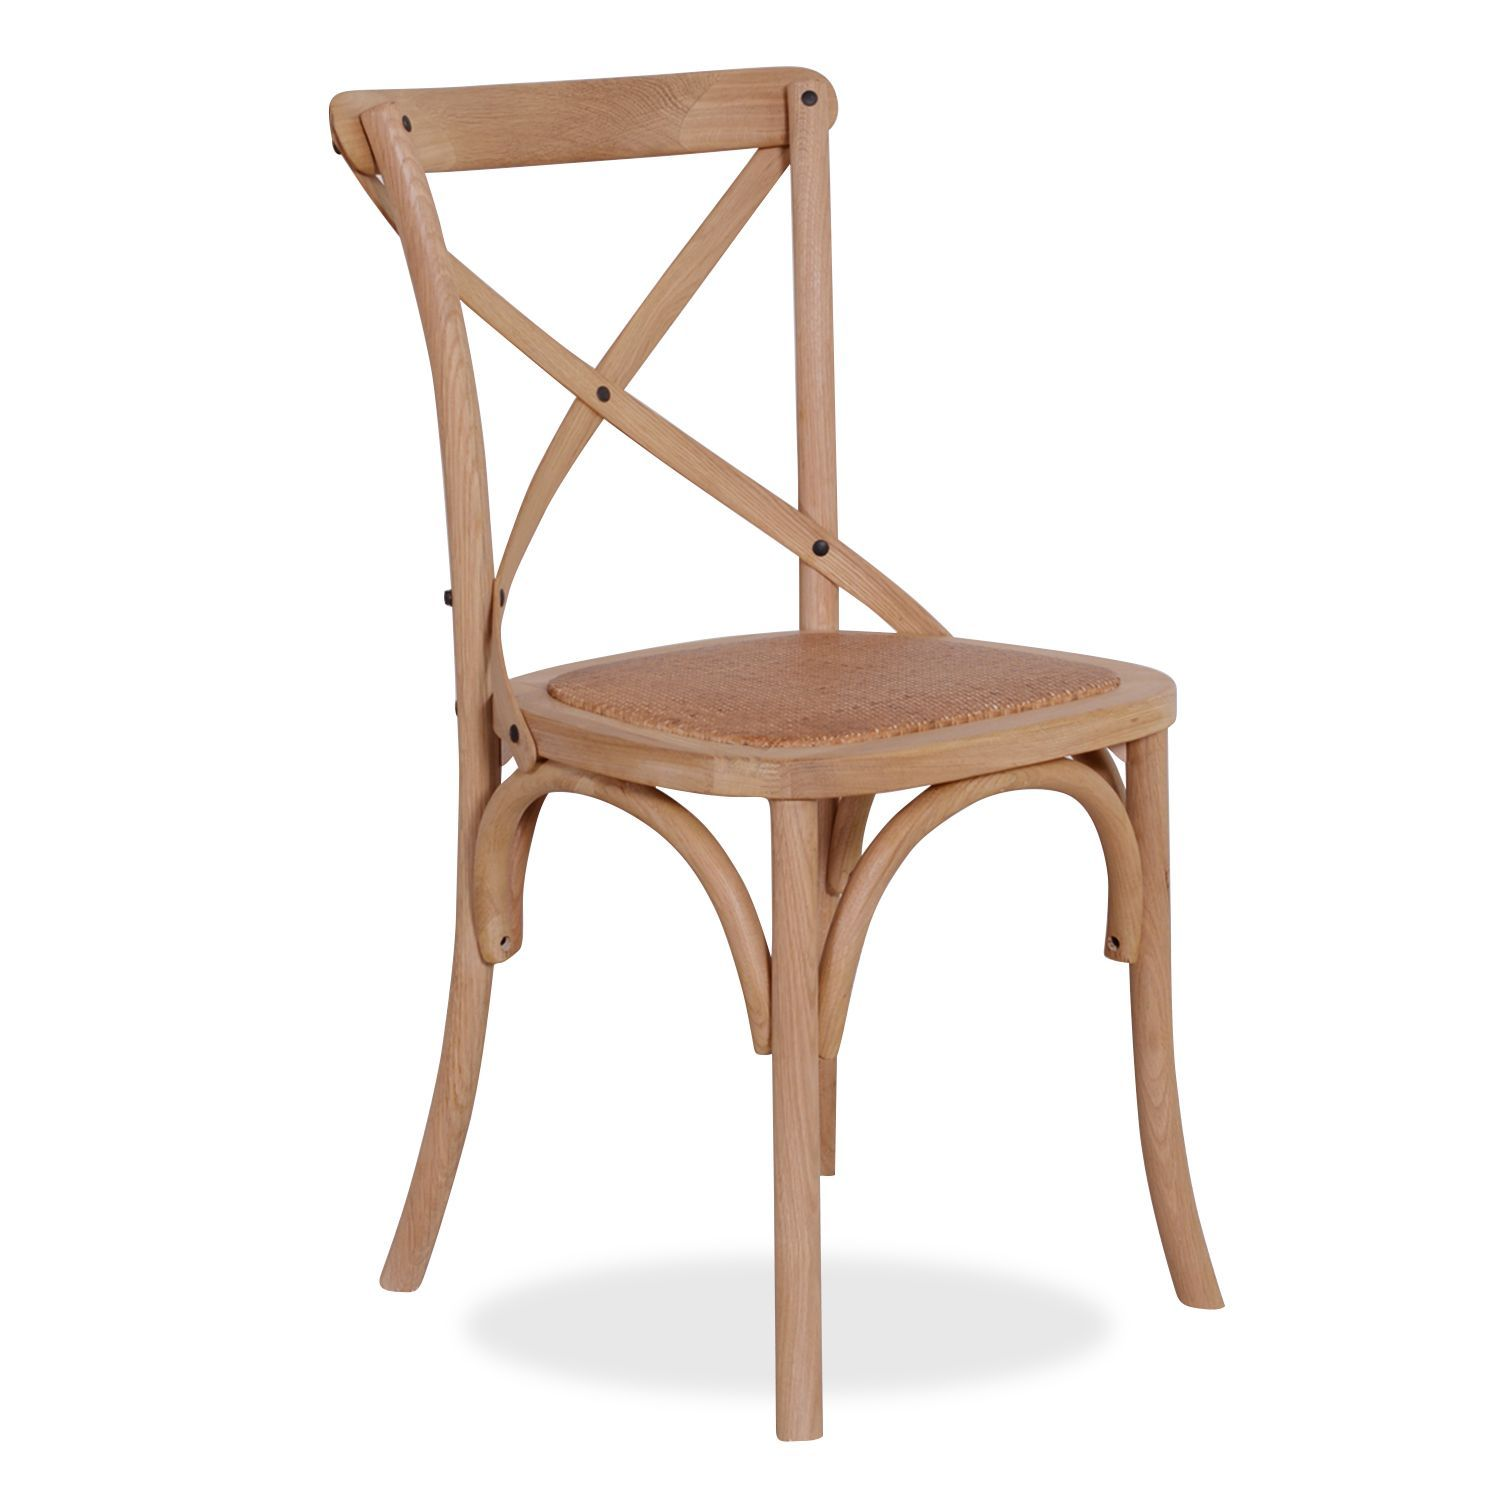 Bistrot chair wooden chairs thonet